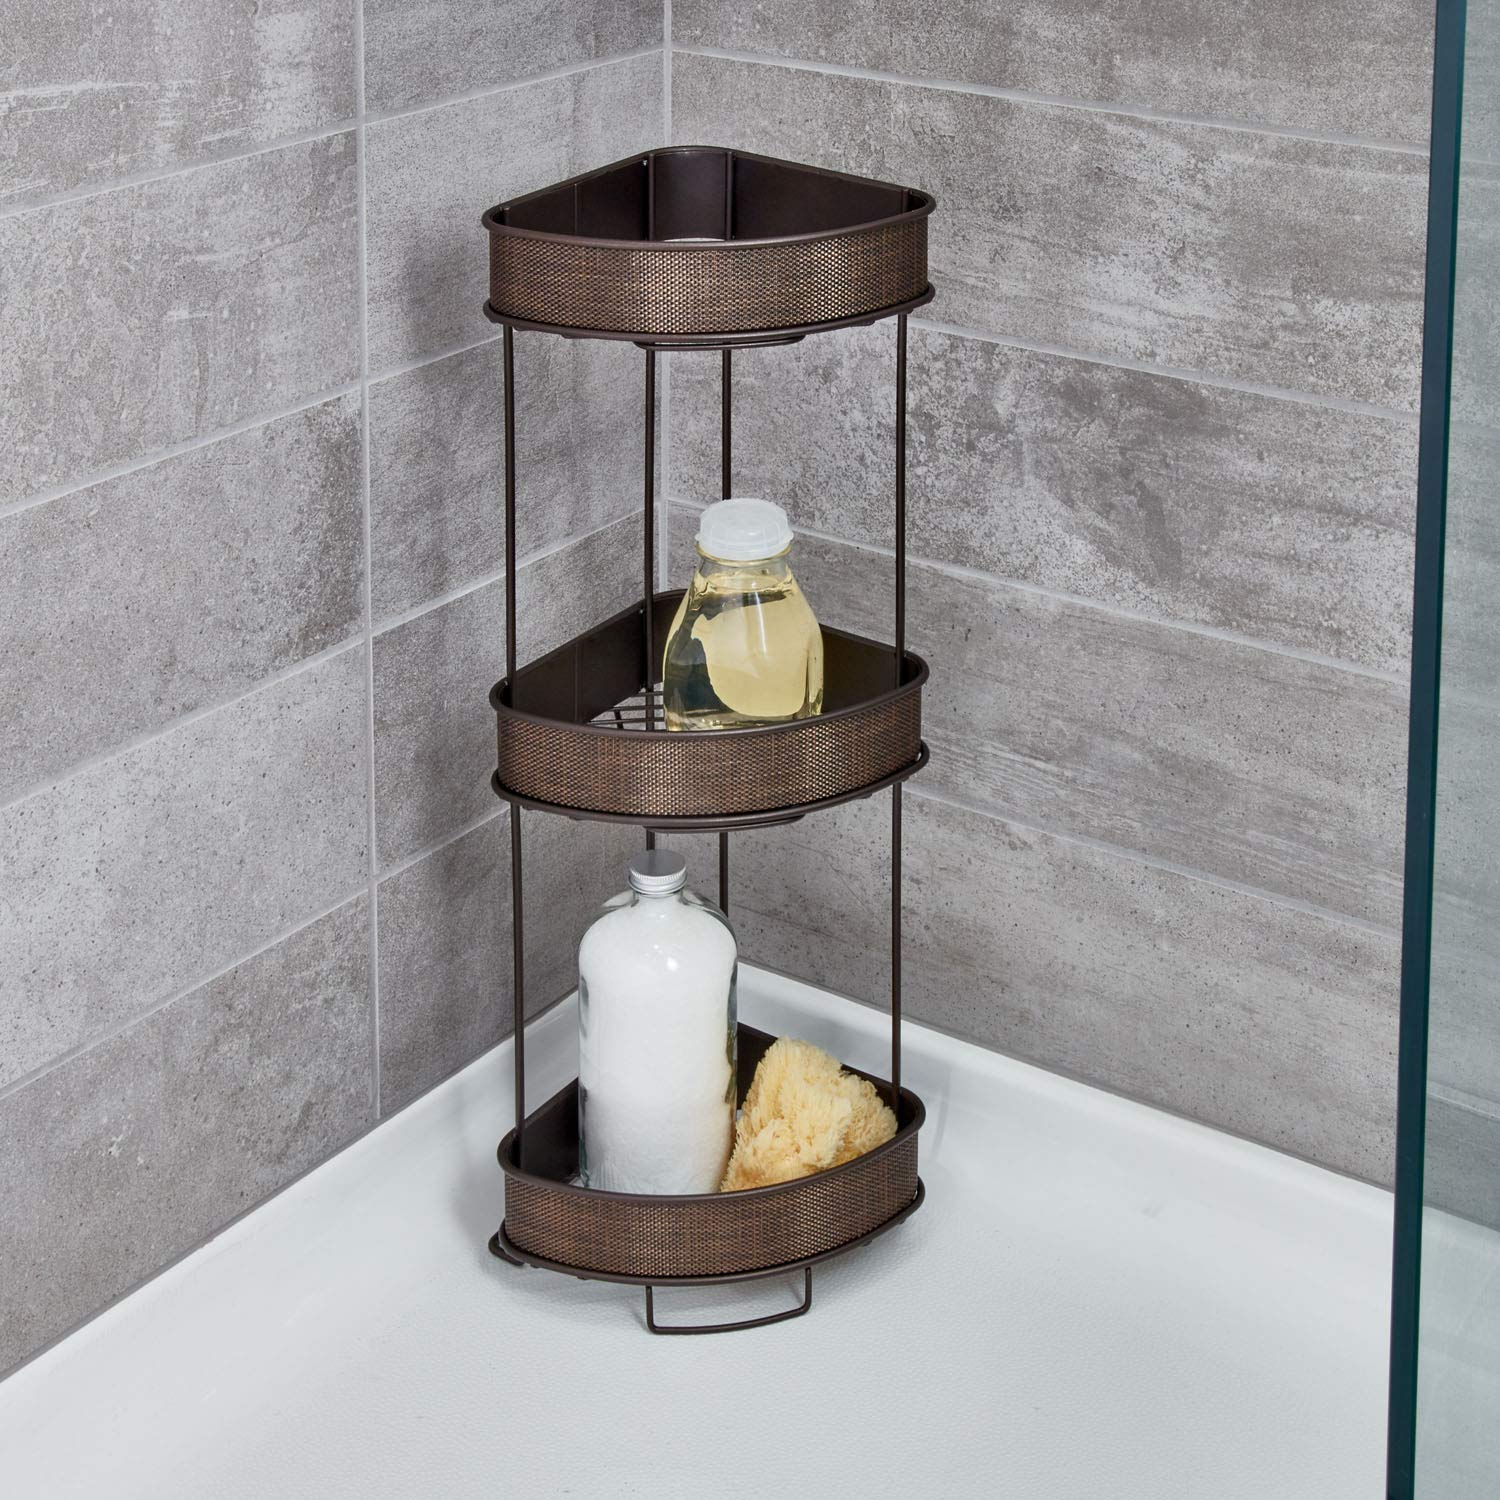 iDesign Twillo Metal Wire Corner Standing Shower Caddy 3-Tier Bath Shelf Baskets for Towels, Soap, Shampoo, Lotion, Accessories, by iDesign (Image #2)